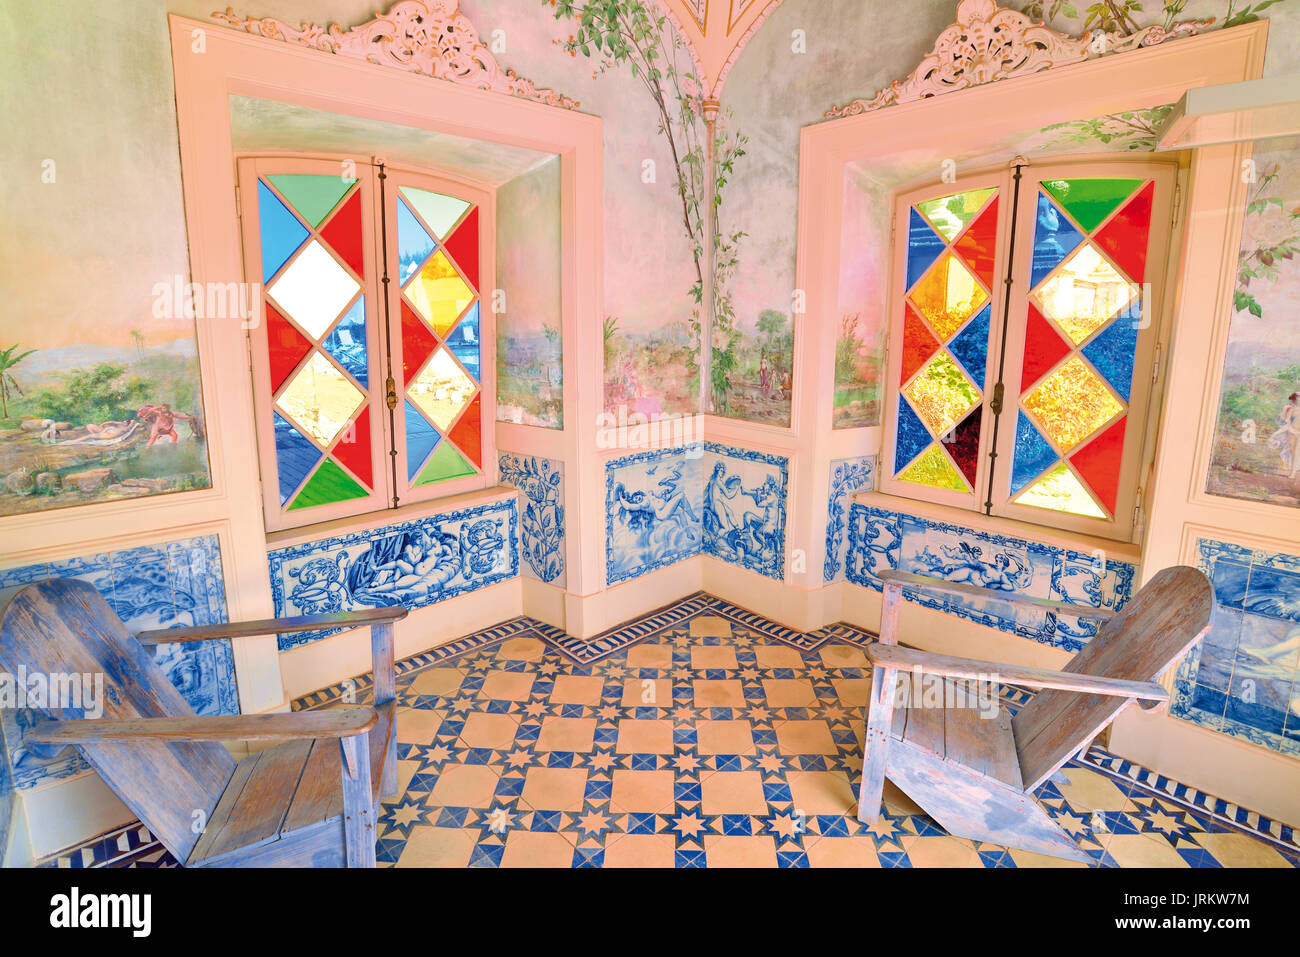 Algarve: Inside look to a garden pavilion with colorful glass windows and tile decoration of Estoi Palace Hotel - Stock Image